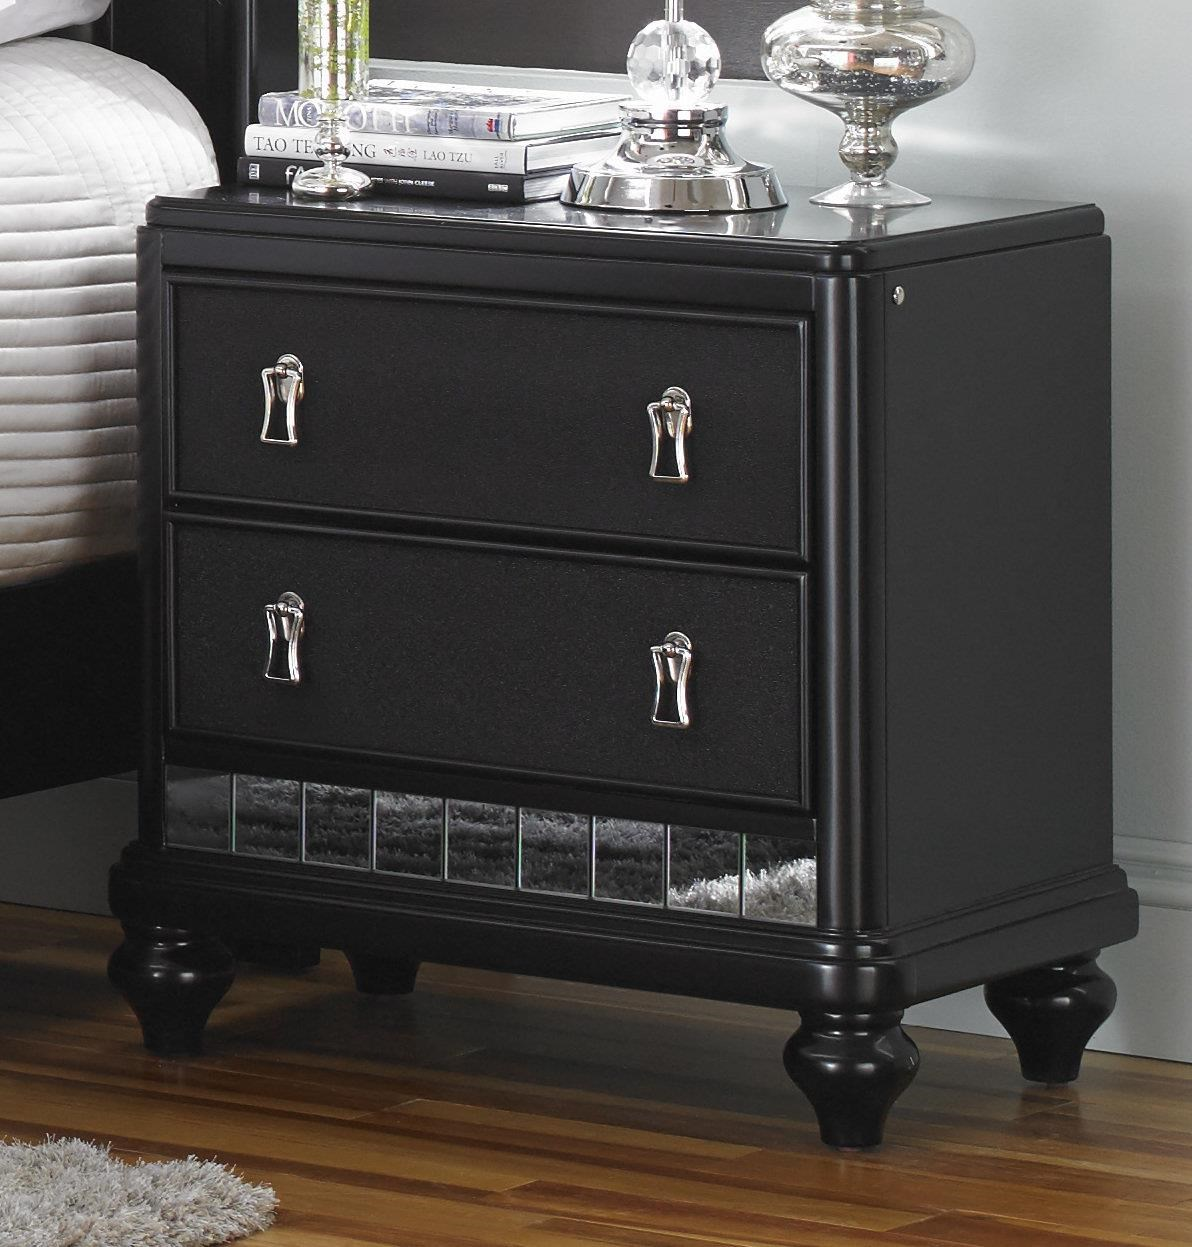 Morris Home Furnishings South Beach South Beach Nightstand - Item Number: 738853122